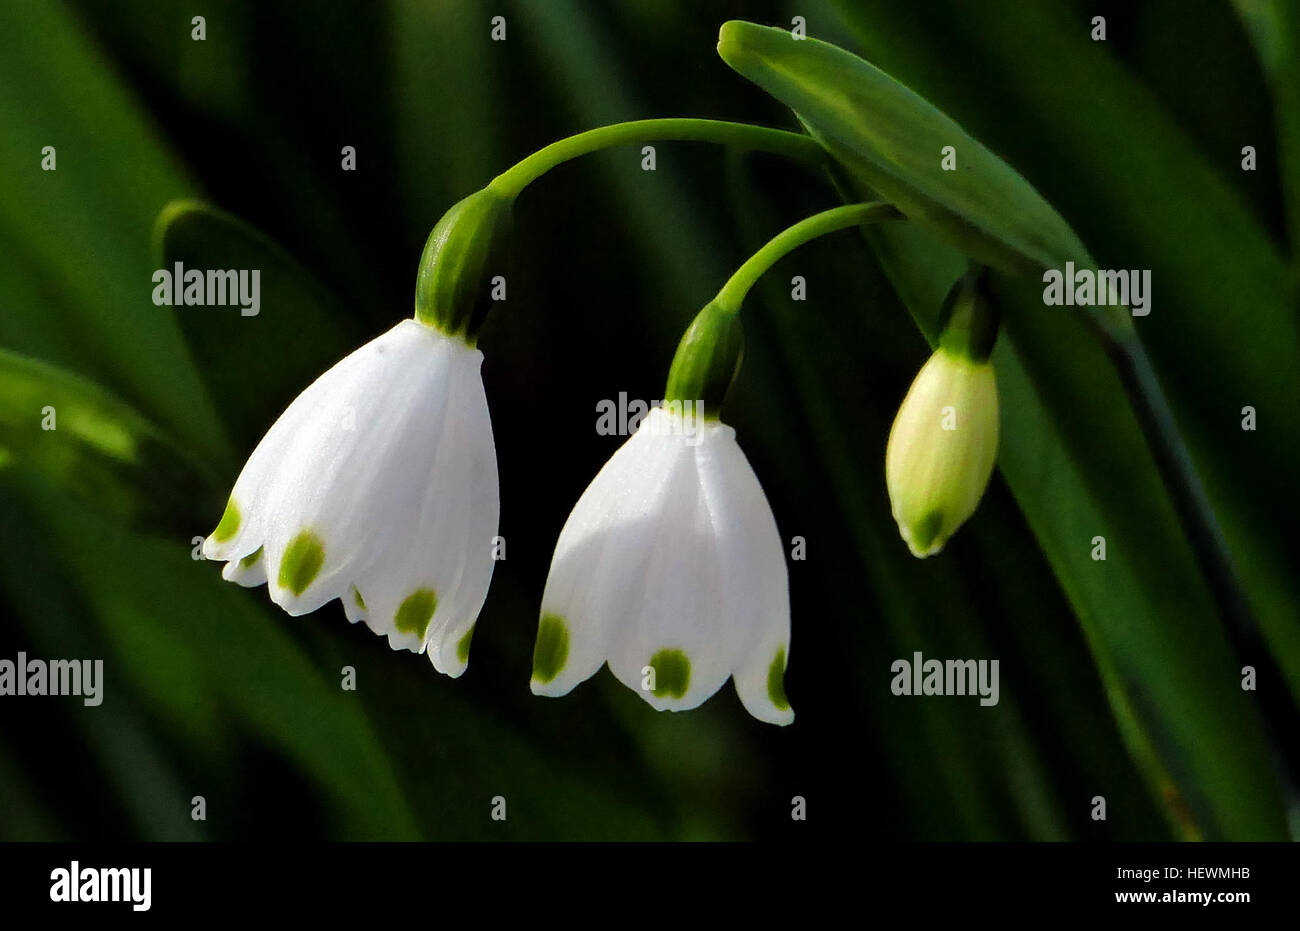 The Lovely Snowdrop Is One Of The First Flowers To Appear In The